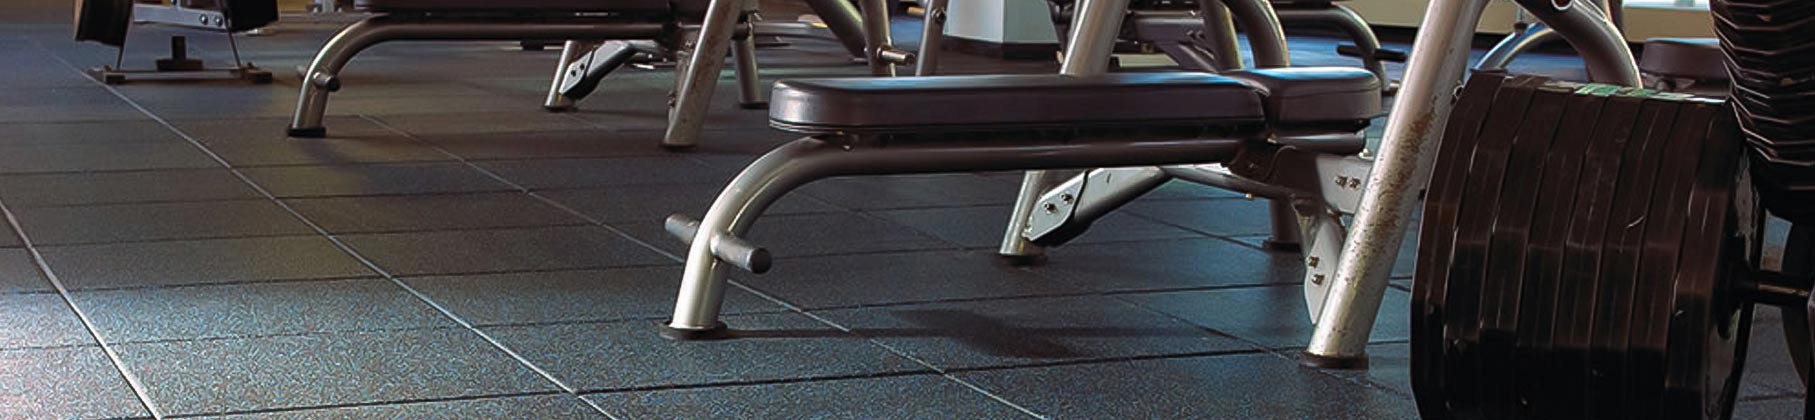 Bench presses on top of rubber flooring tiles for gyms from Zogics.